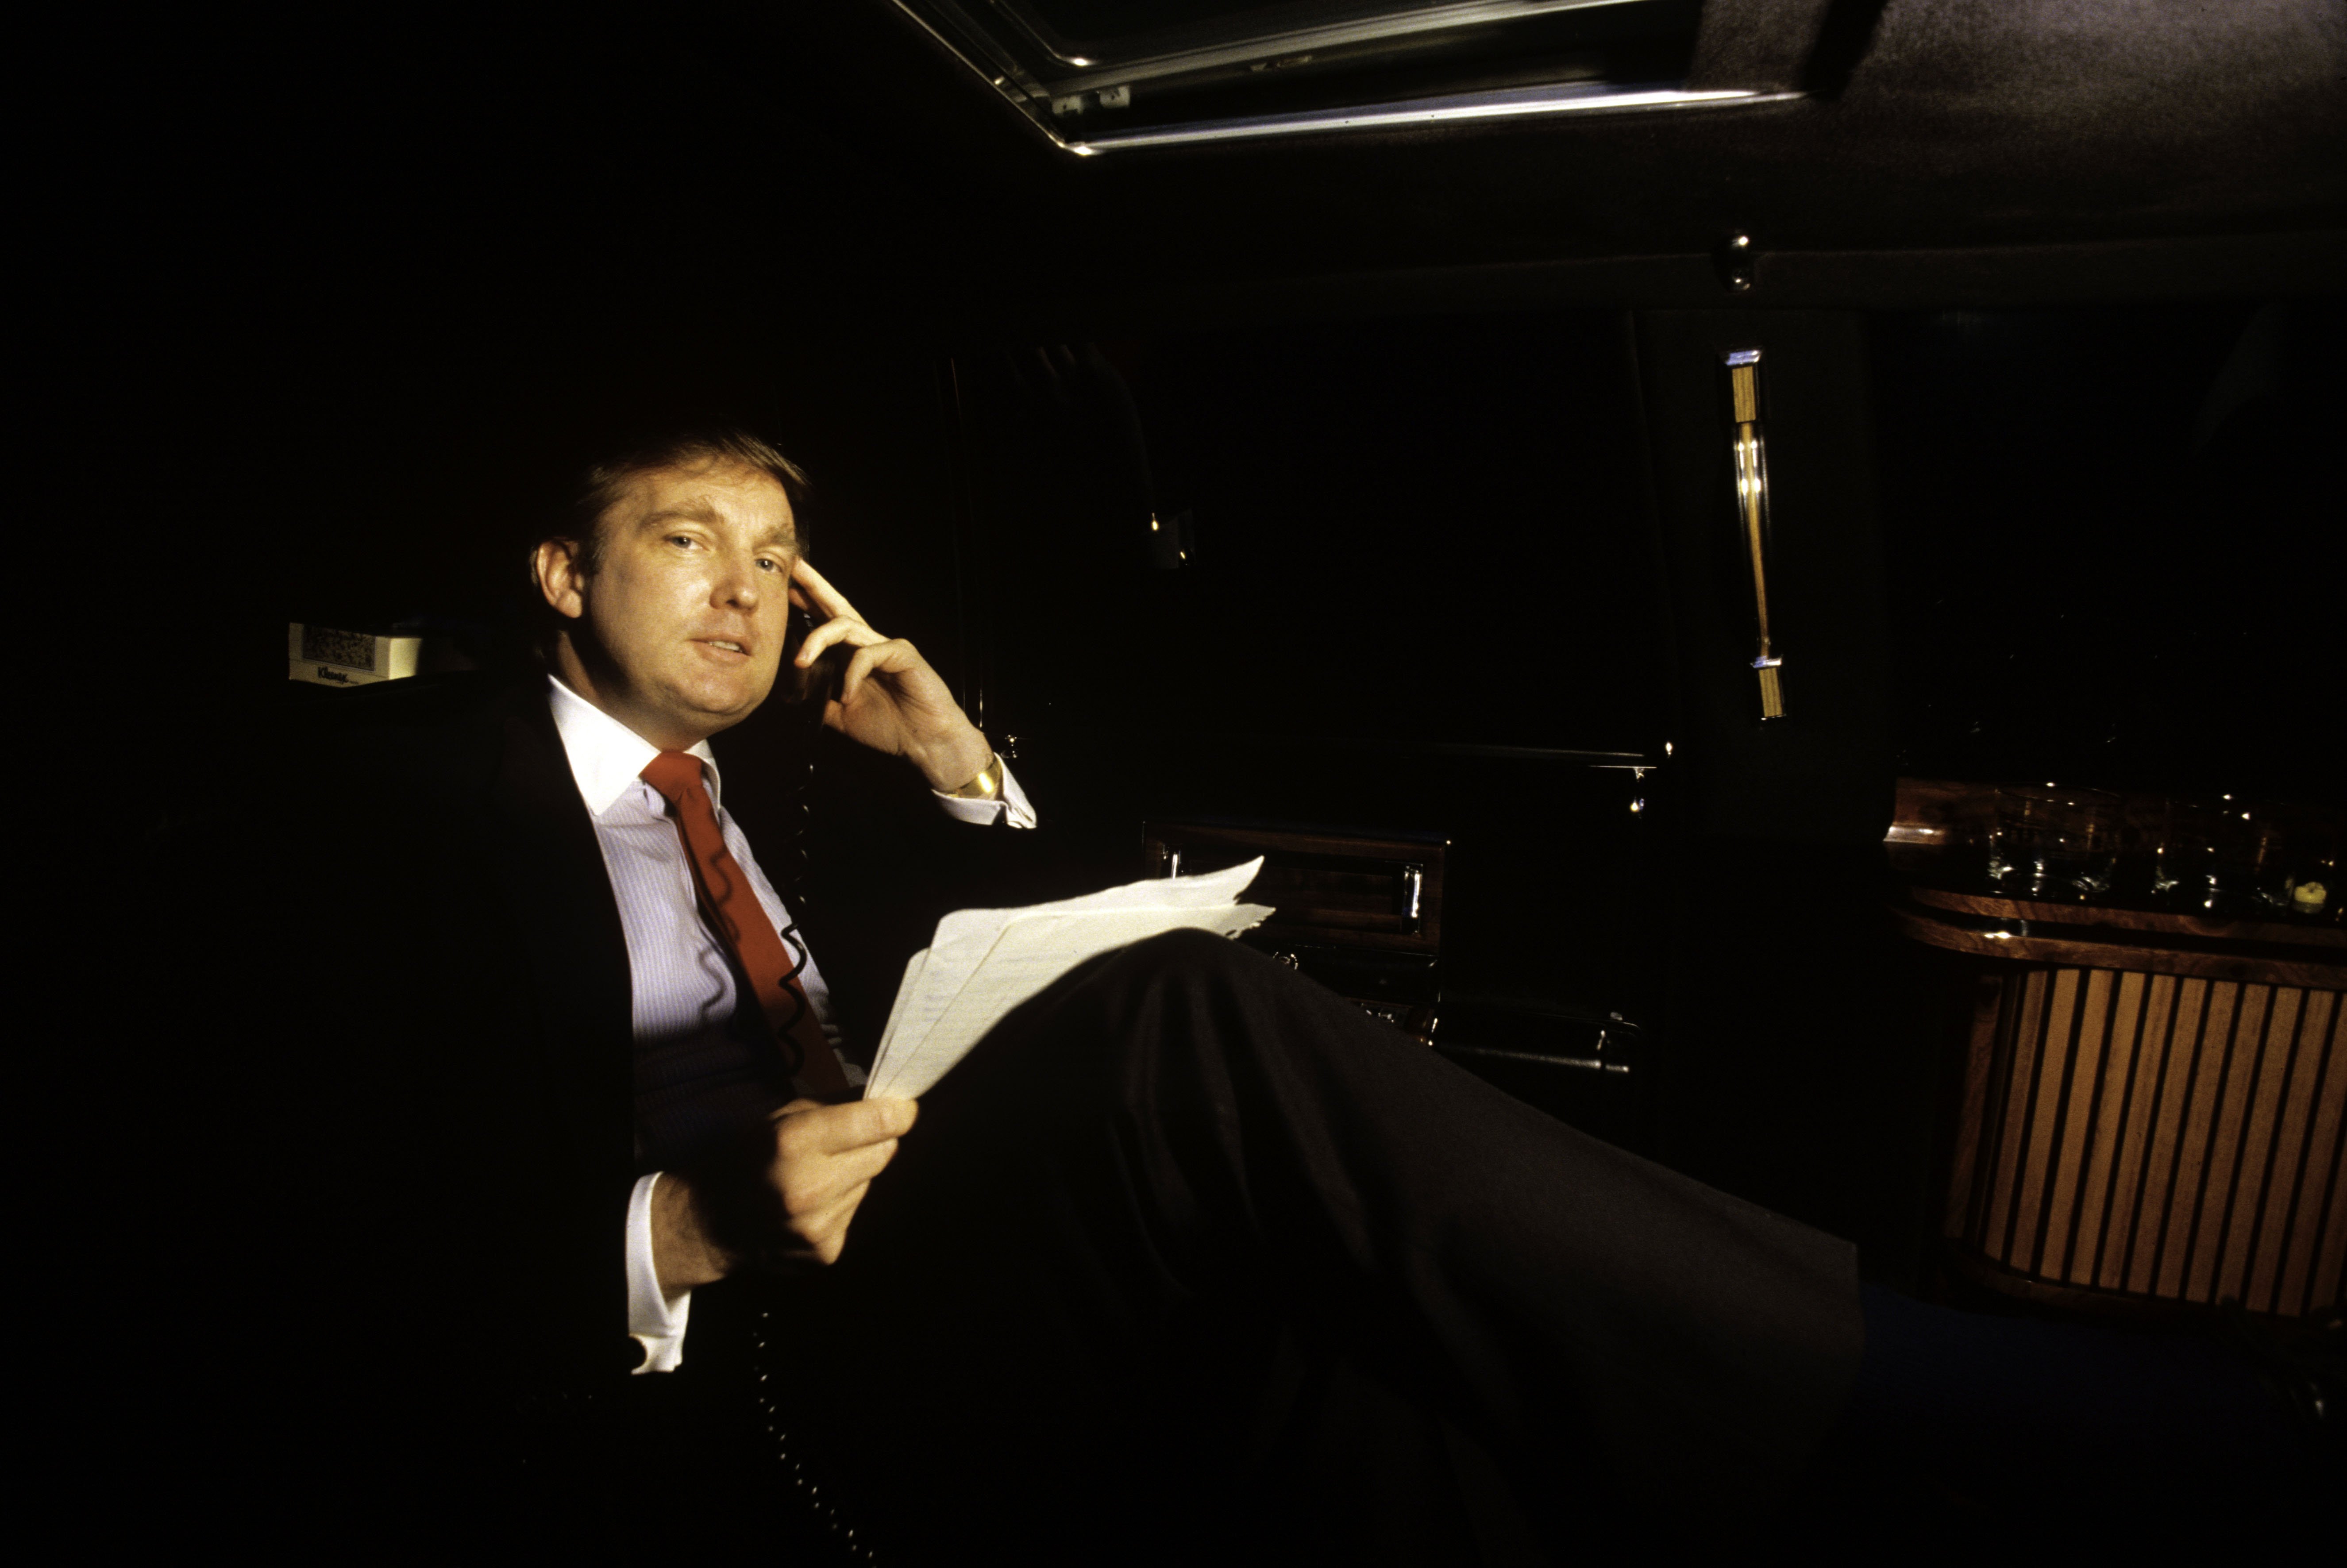 Donald Trump, real estate mogul, entrepreneur, and billionare commutes around New York City in his limousine often using this transportation as an office on August 1987 | Photo: GettyImages